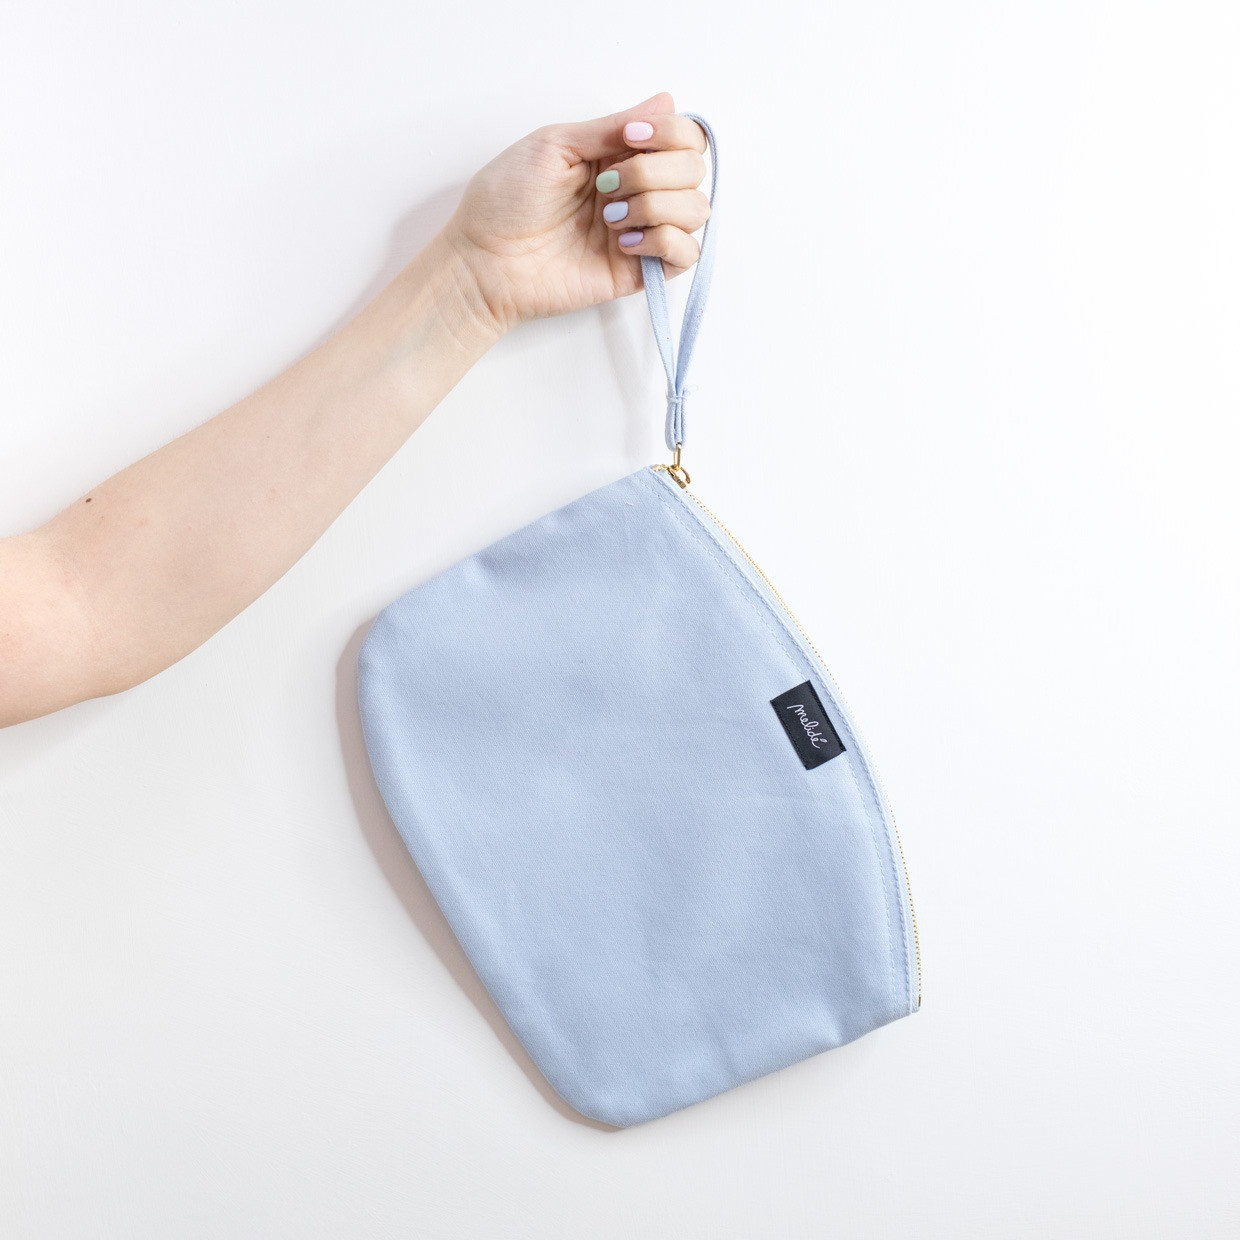 The ZIPPED POUCH L - Bilancia